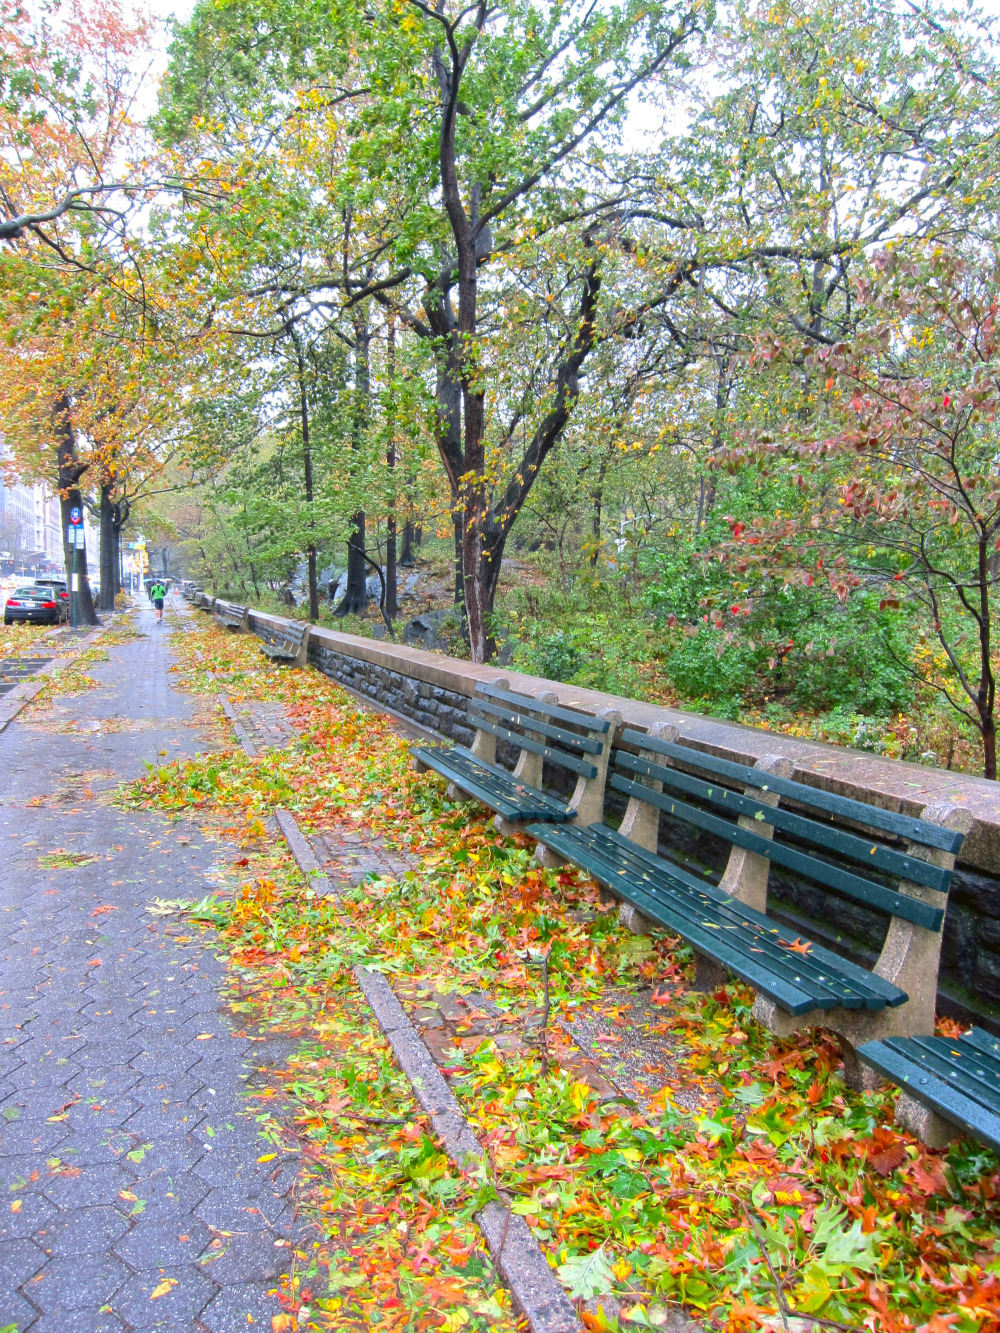 cpw under leaves